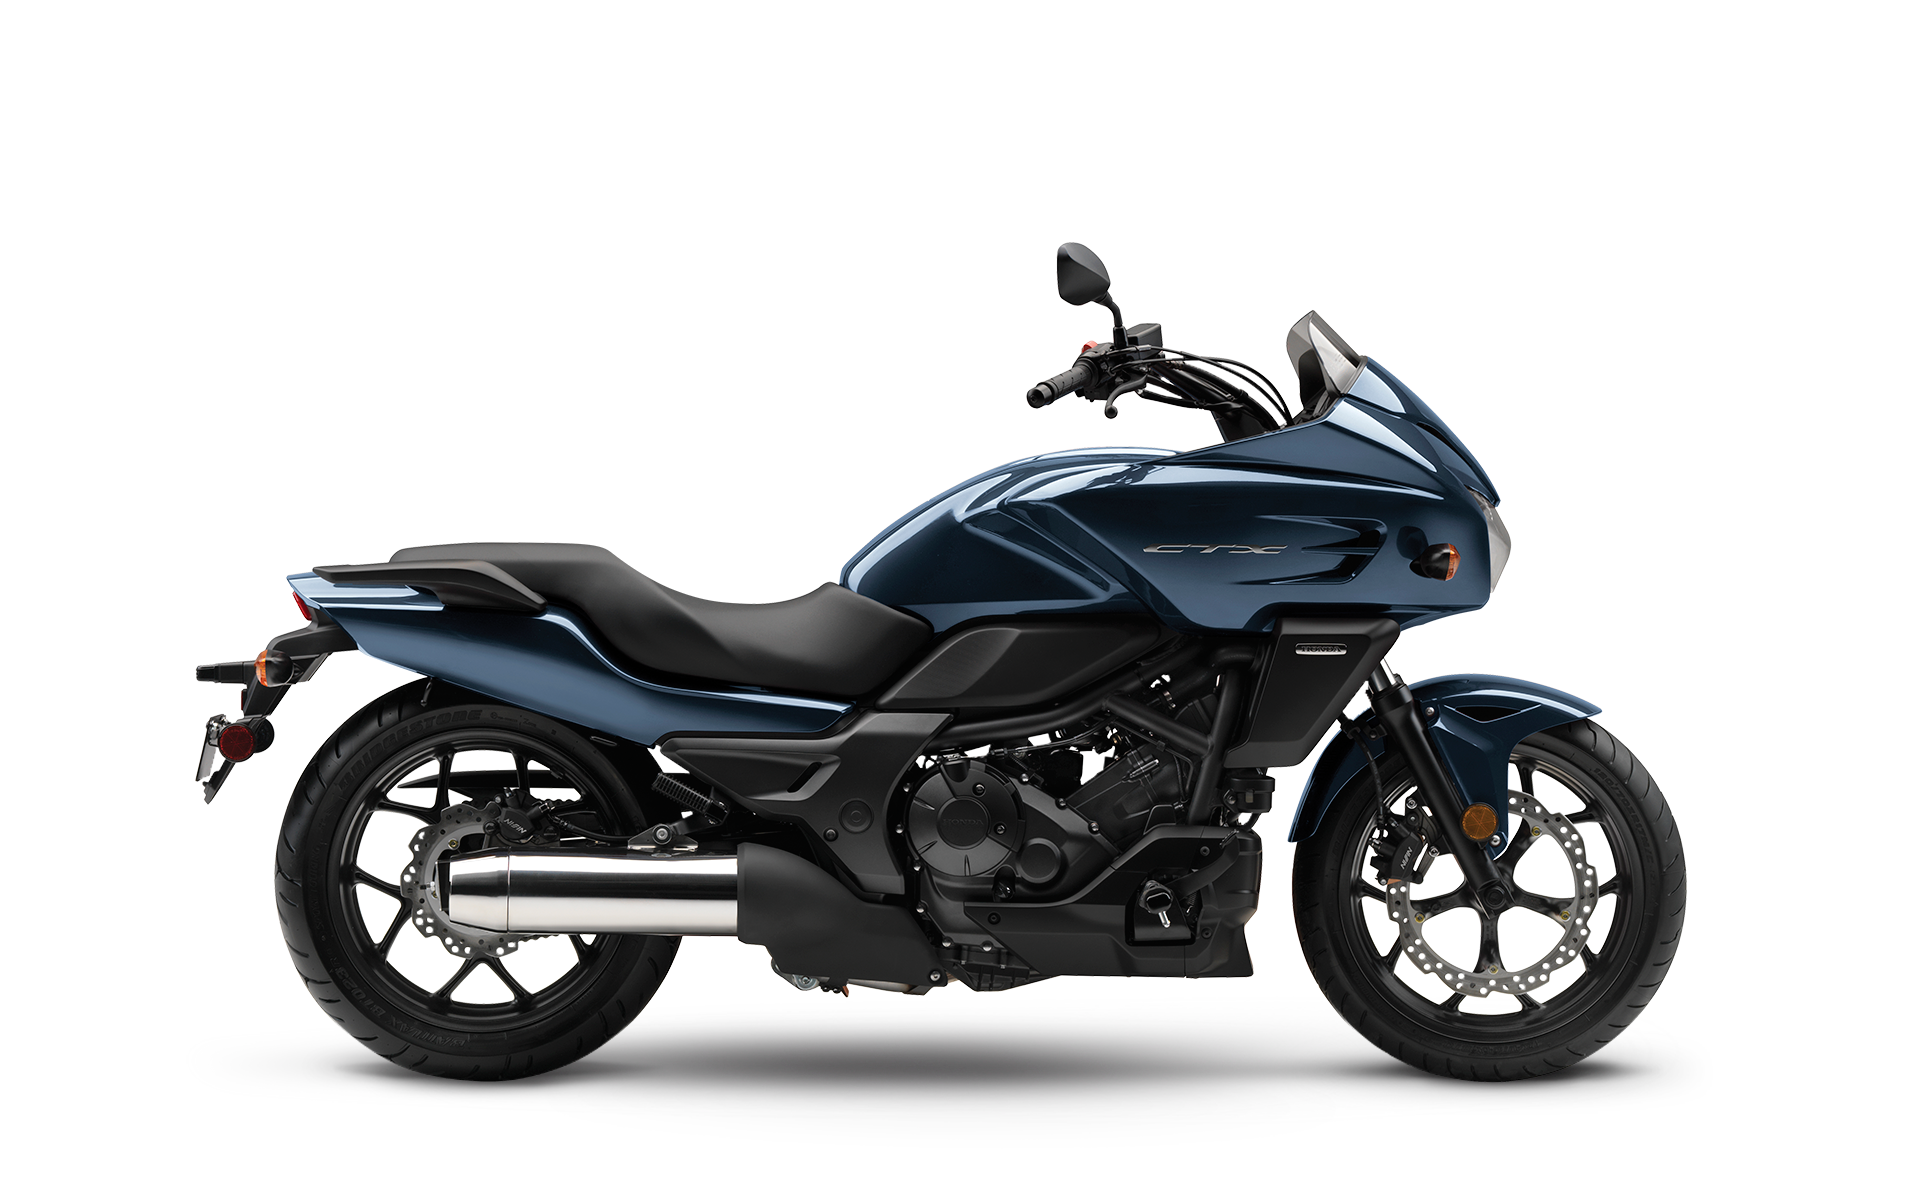 Honda ctx700 motorcycles and bike gear pinterest honda motorcycle manufacturers and honda motorcycles